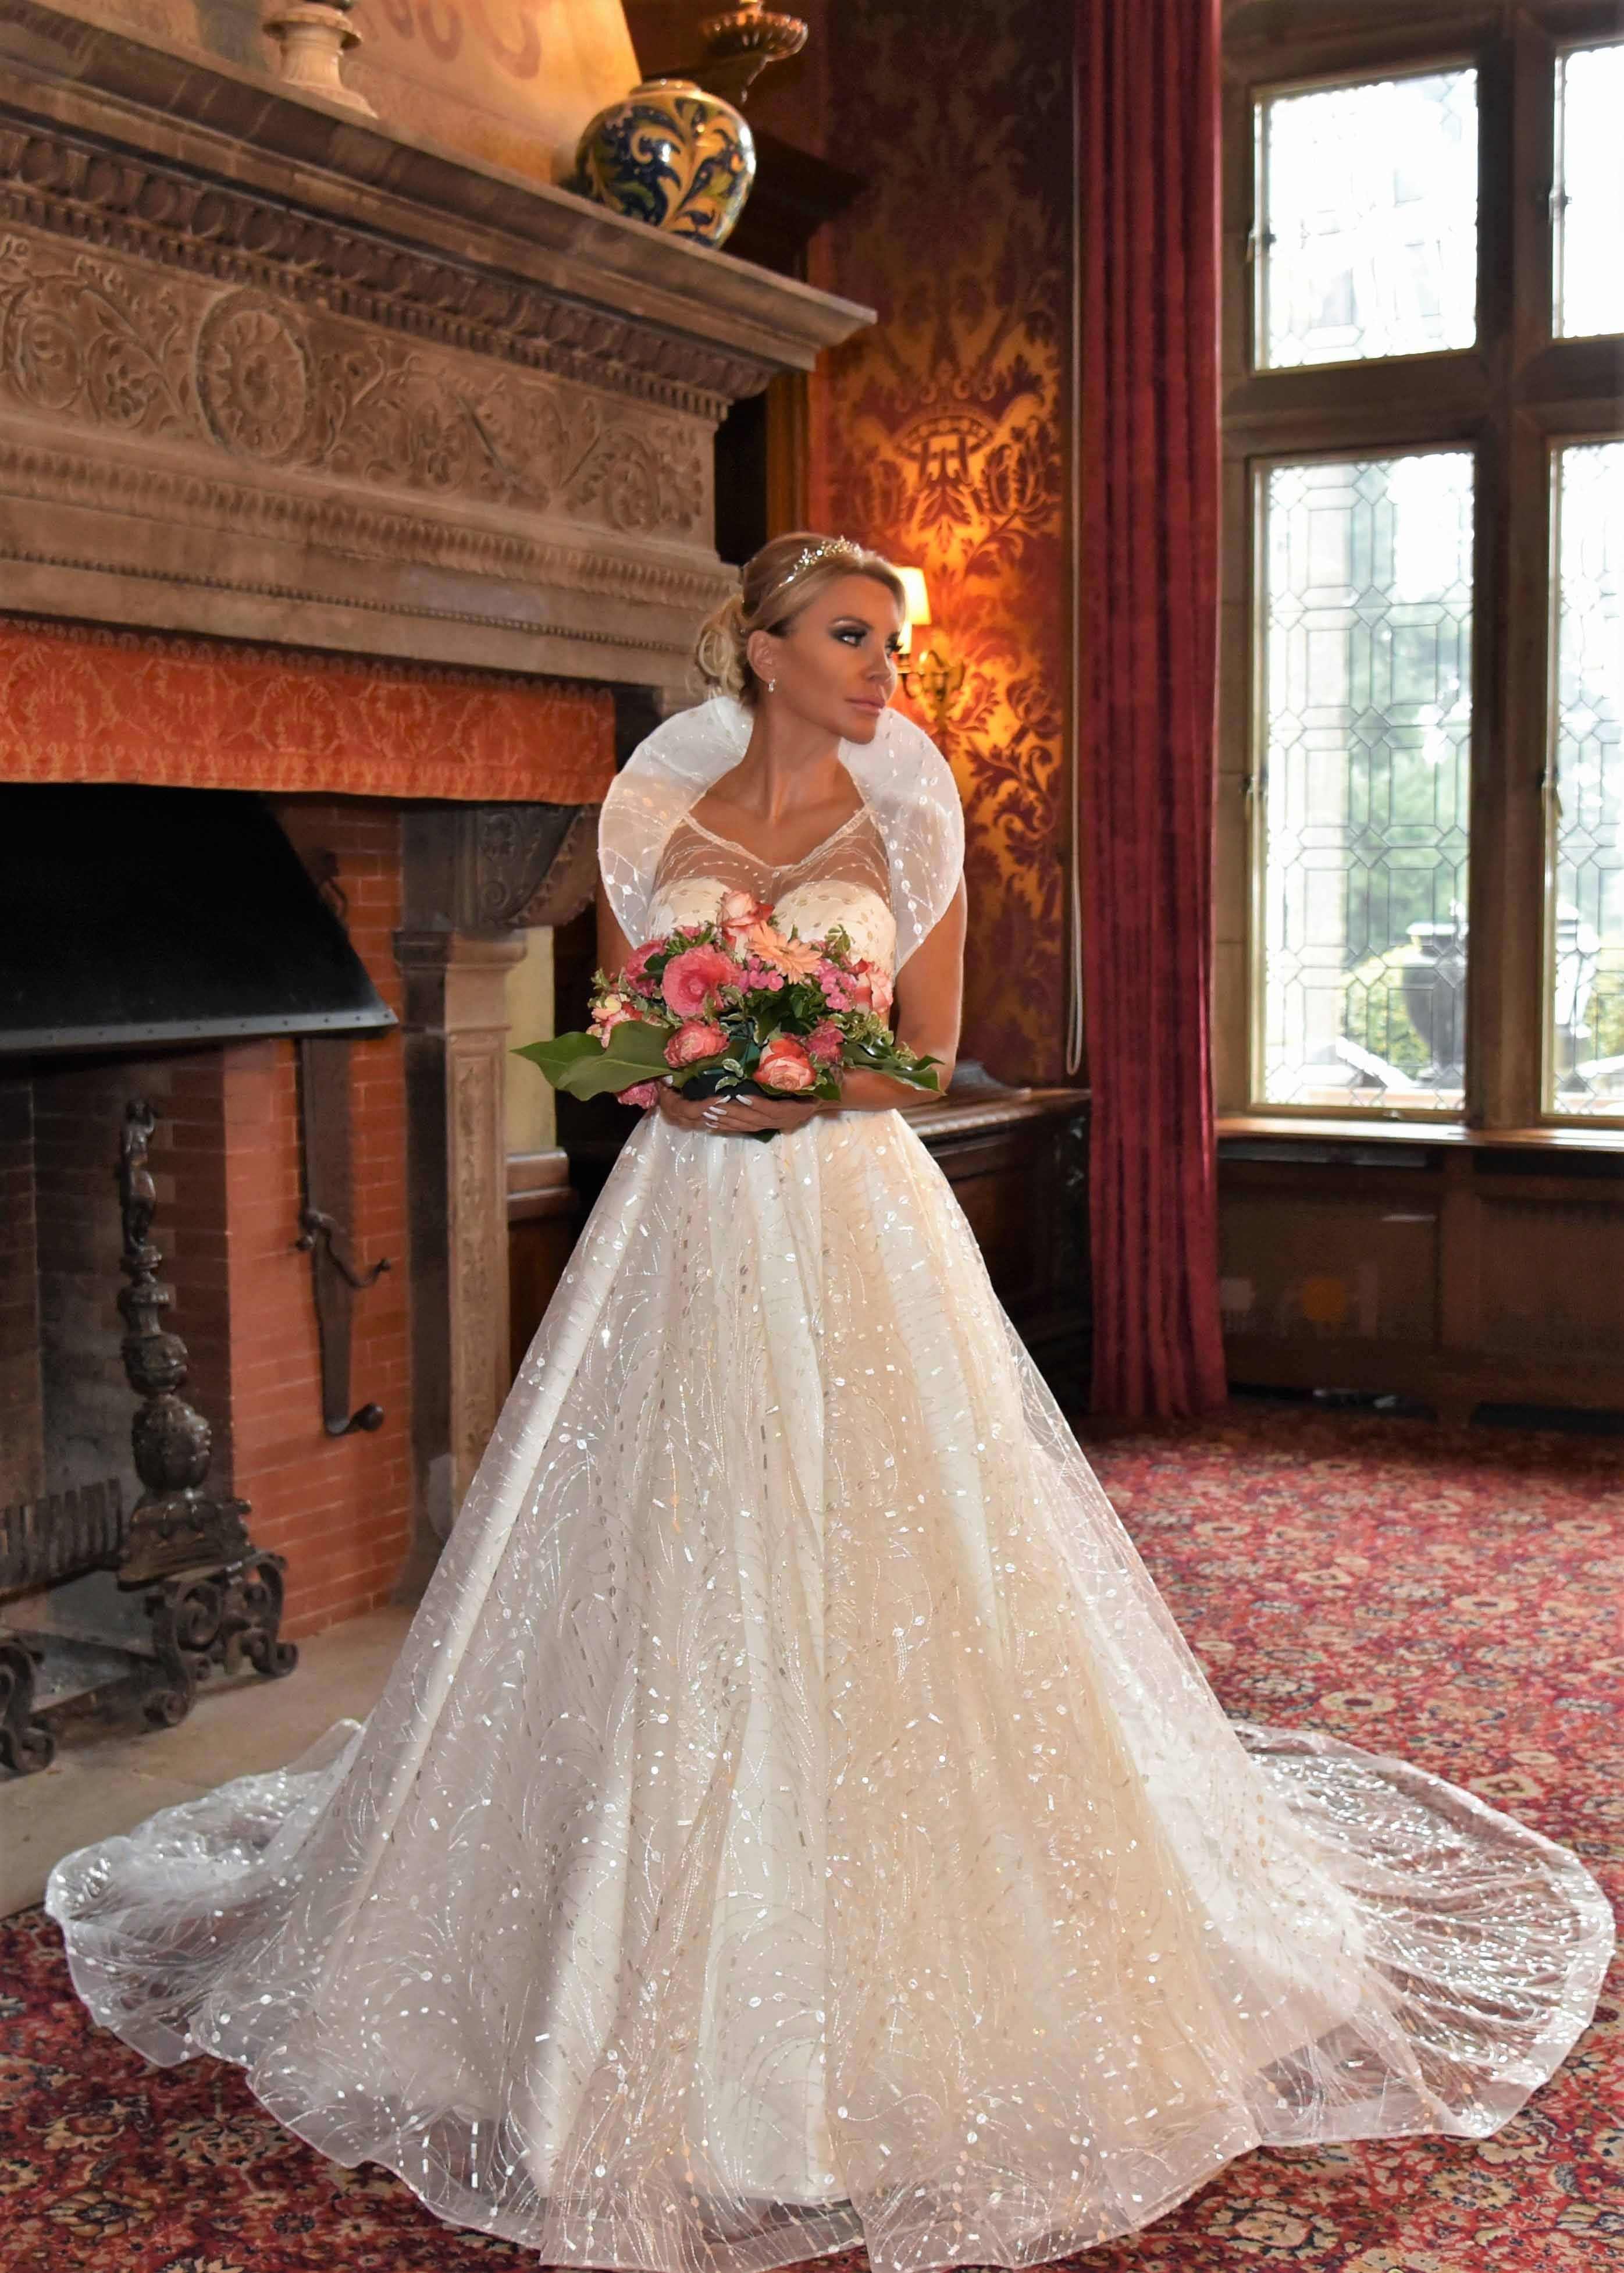 Latest German-Made Wedding Dresses By Samiha Baehr